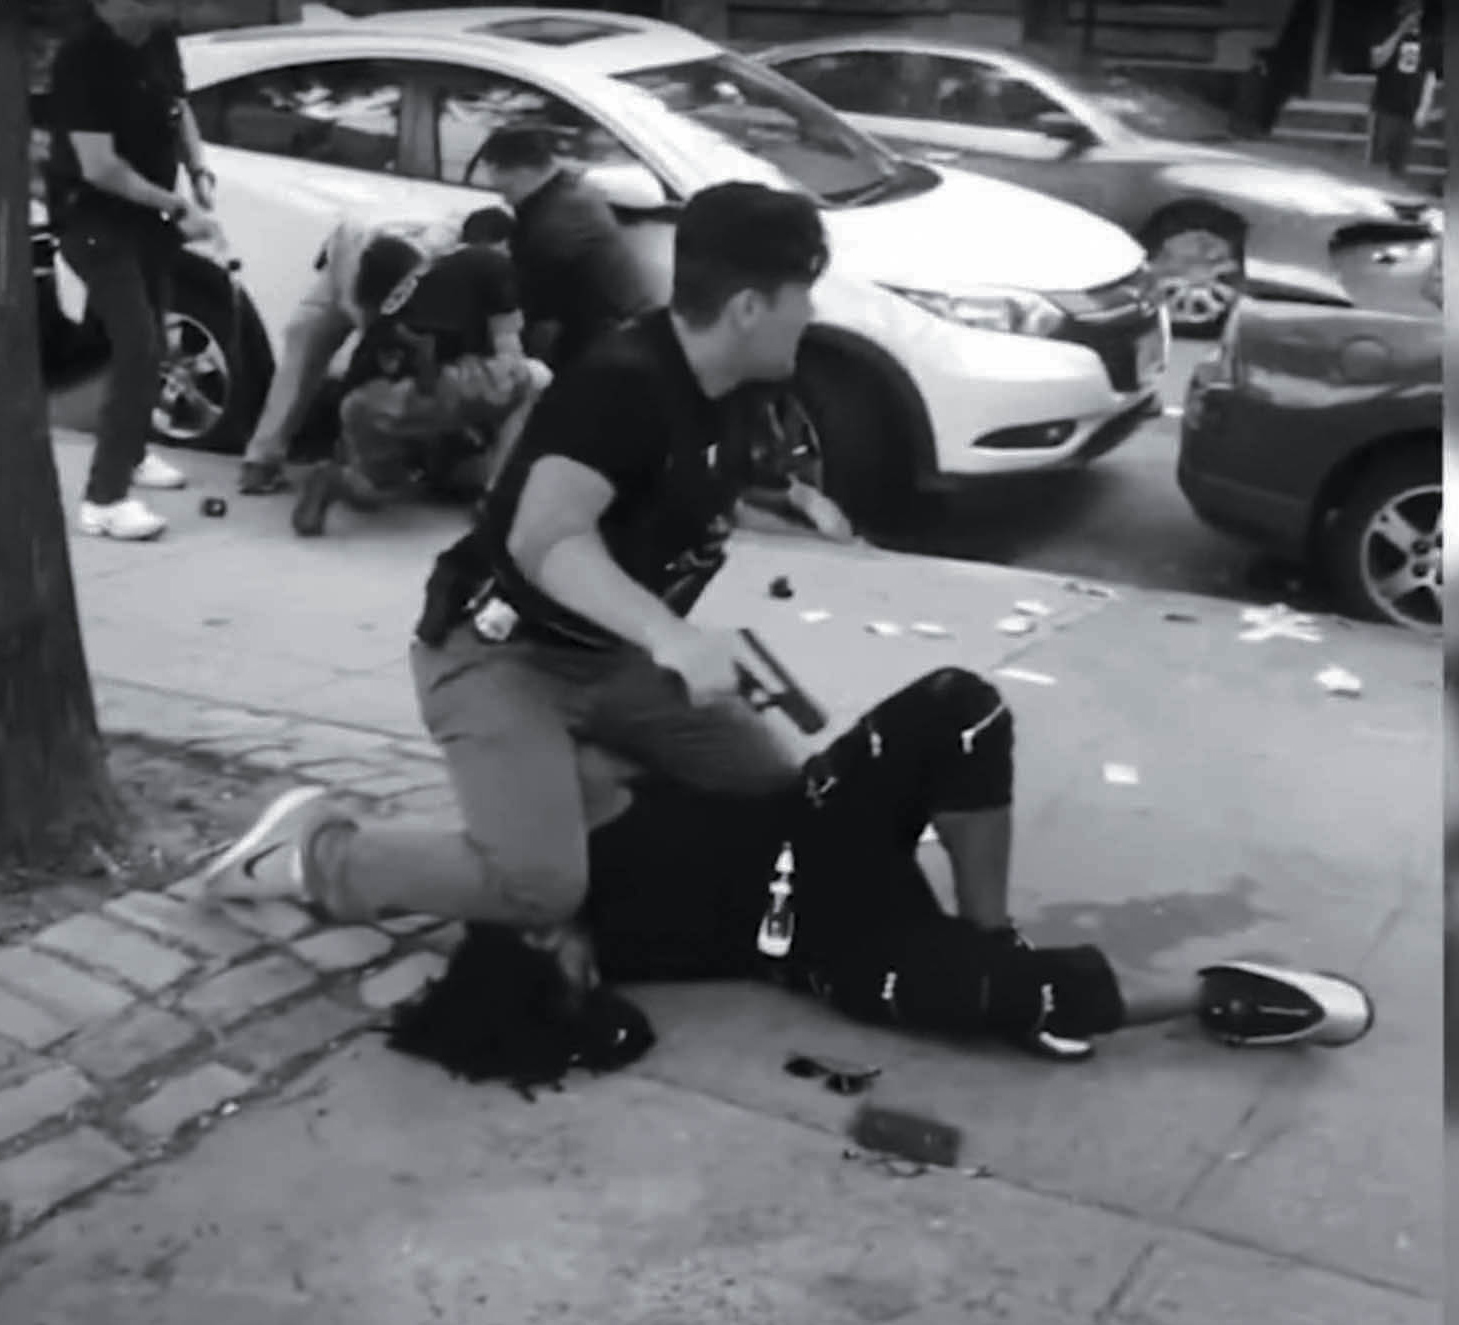 an NYPD cop knees the head of a suspect in 2019